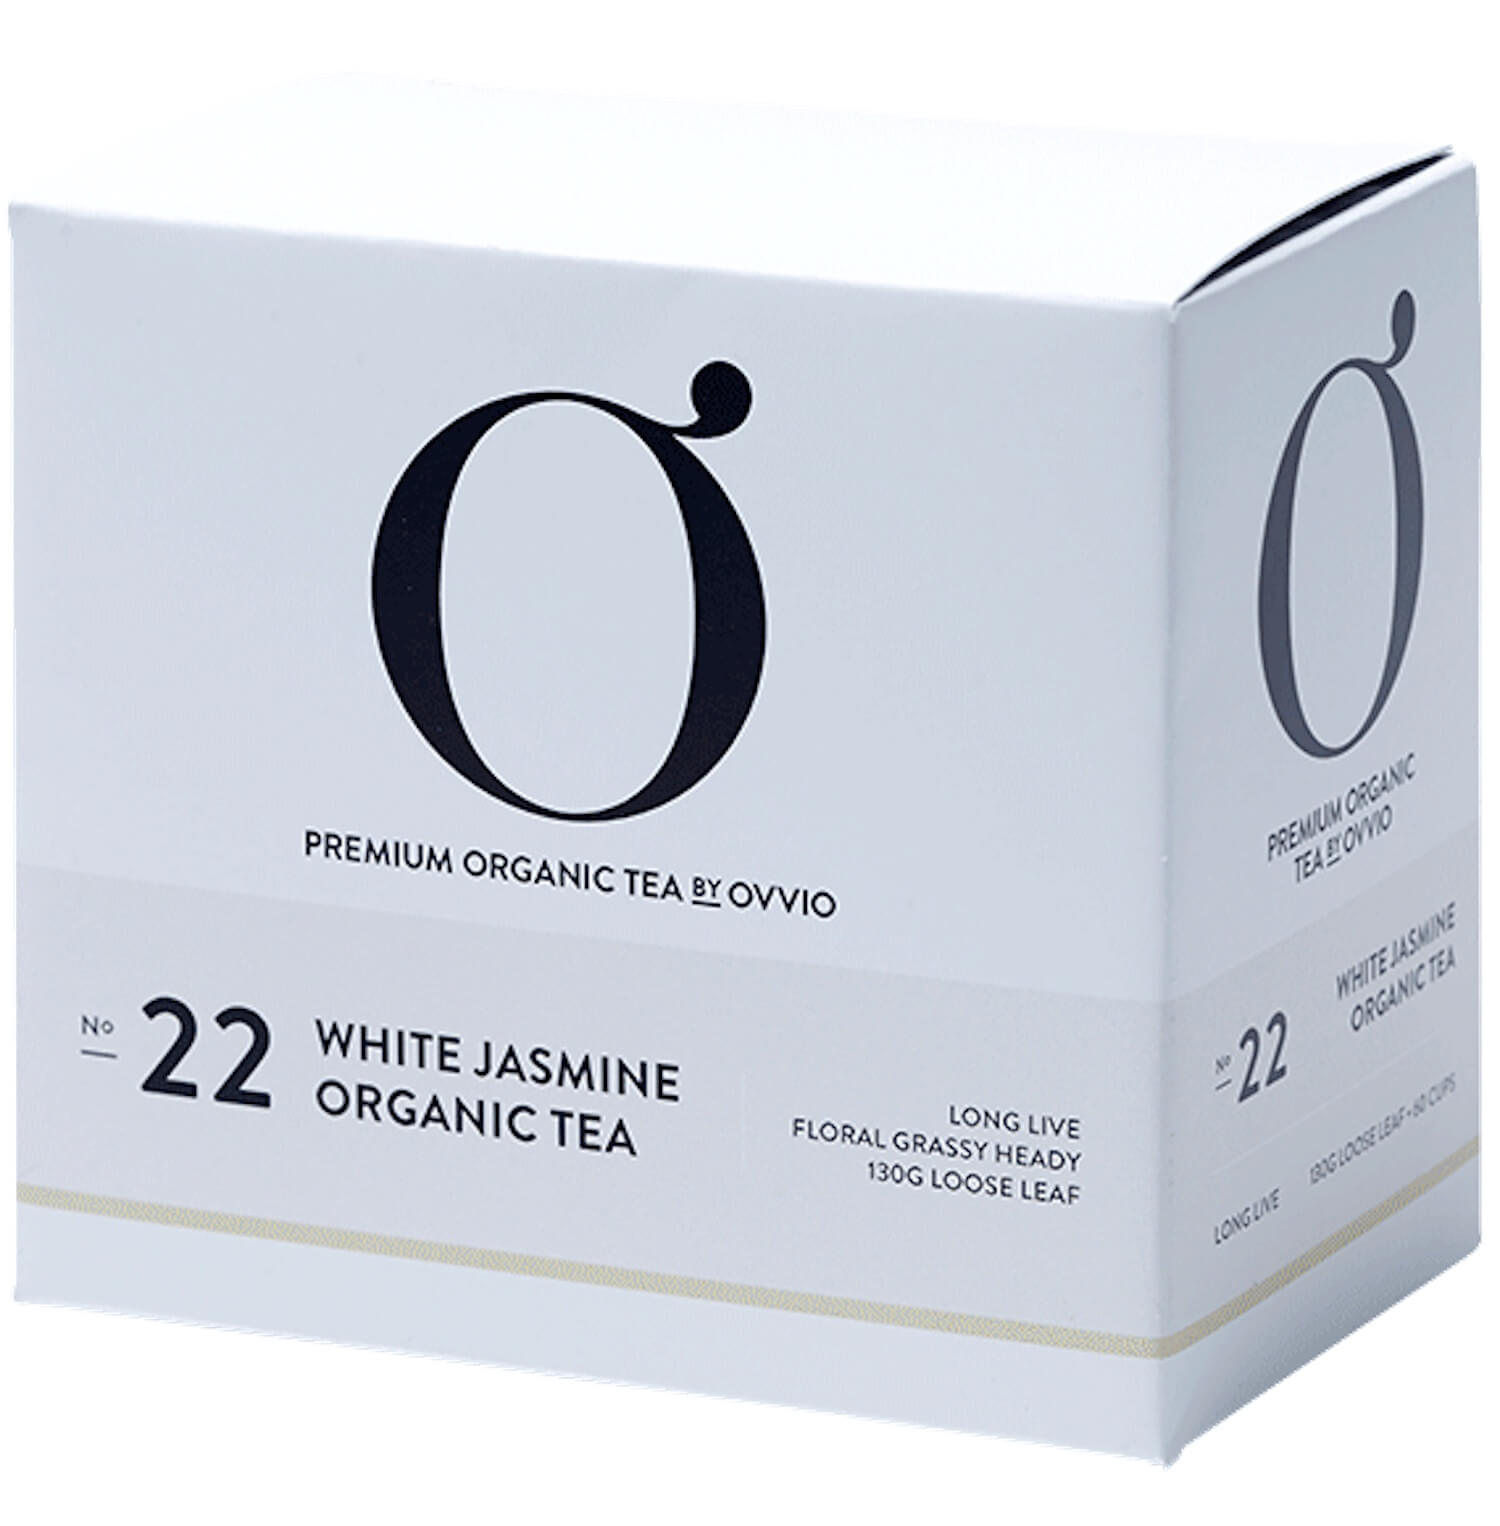 est living karina calvert jones gift guide ovvio tea